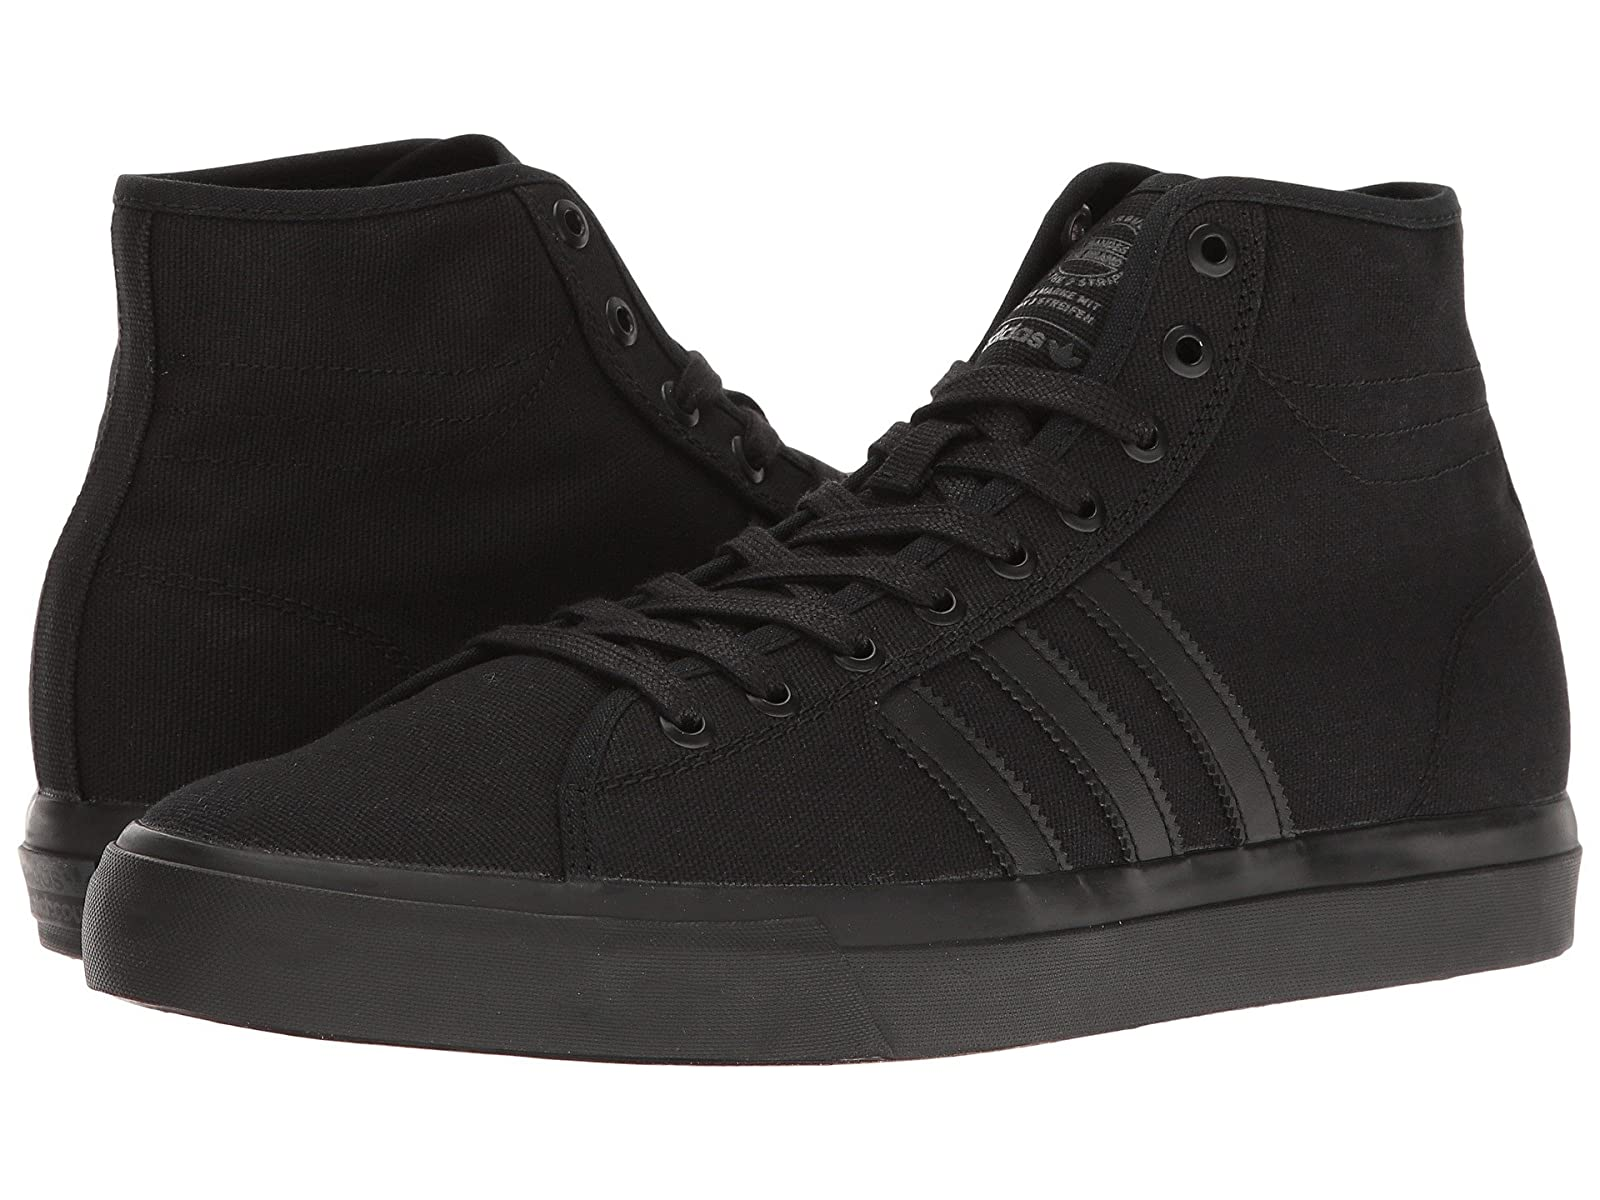 adidas Skateboarding Matchcourt High RXStylish and characteristic shoes